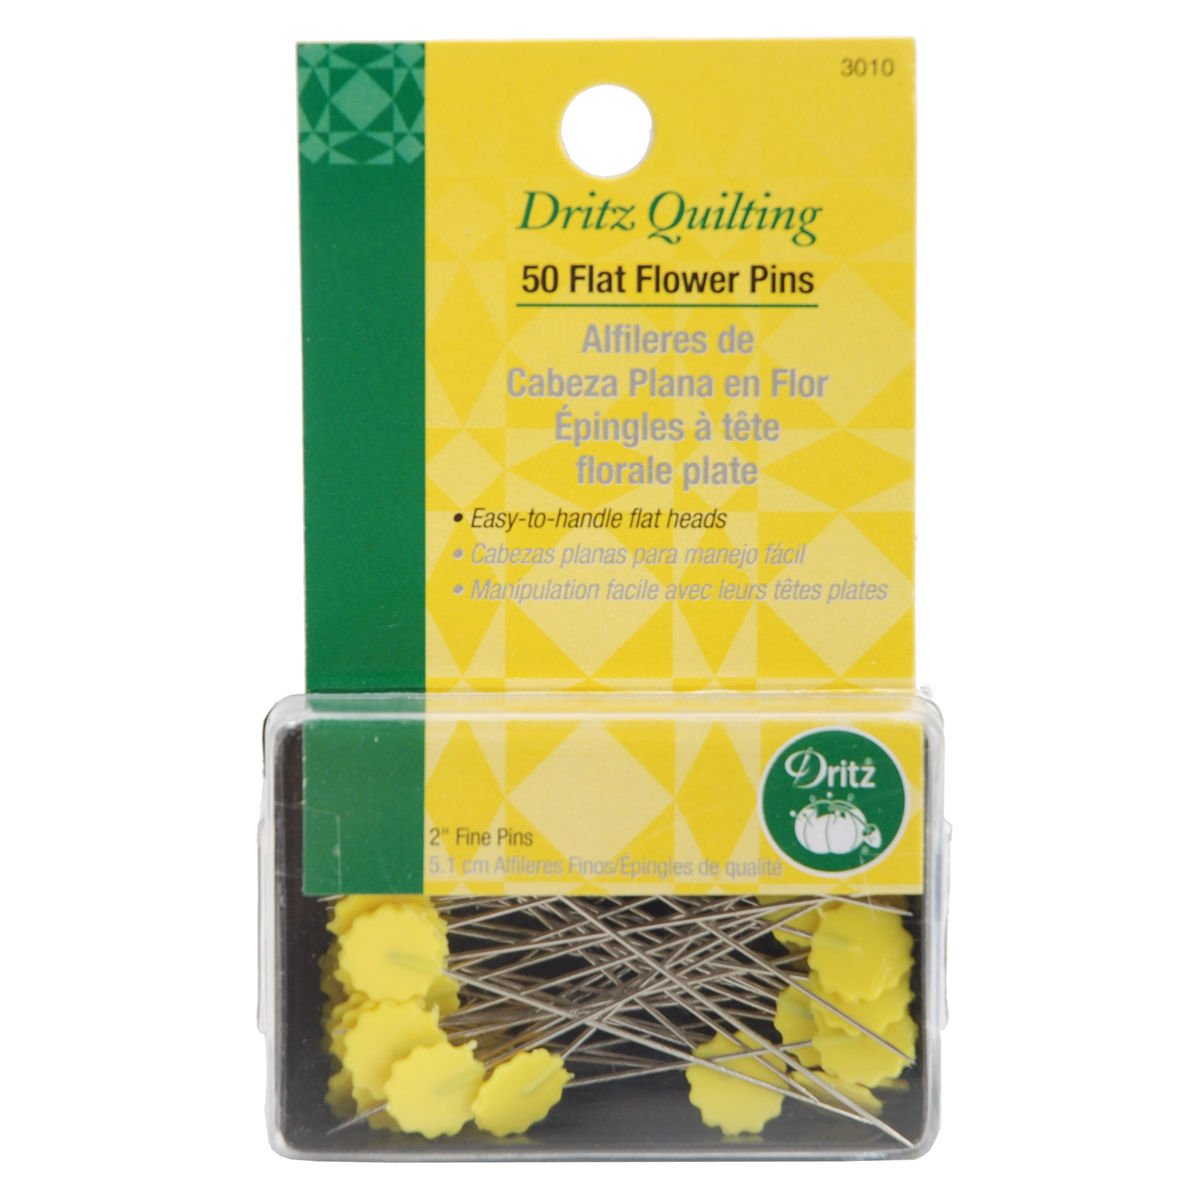 50 Flat Flower Pins - Dritz